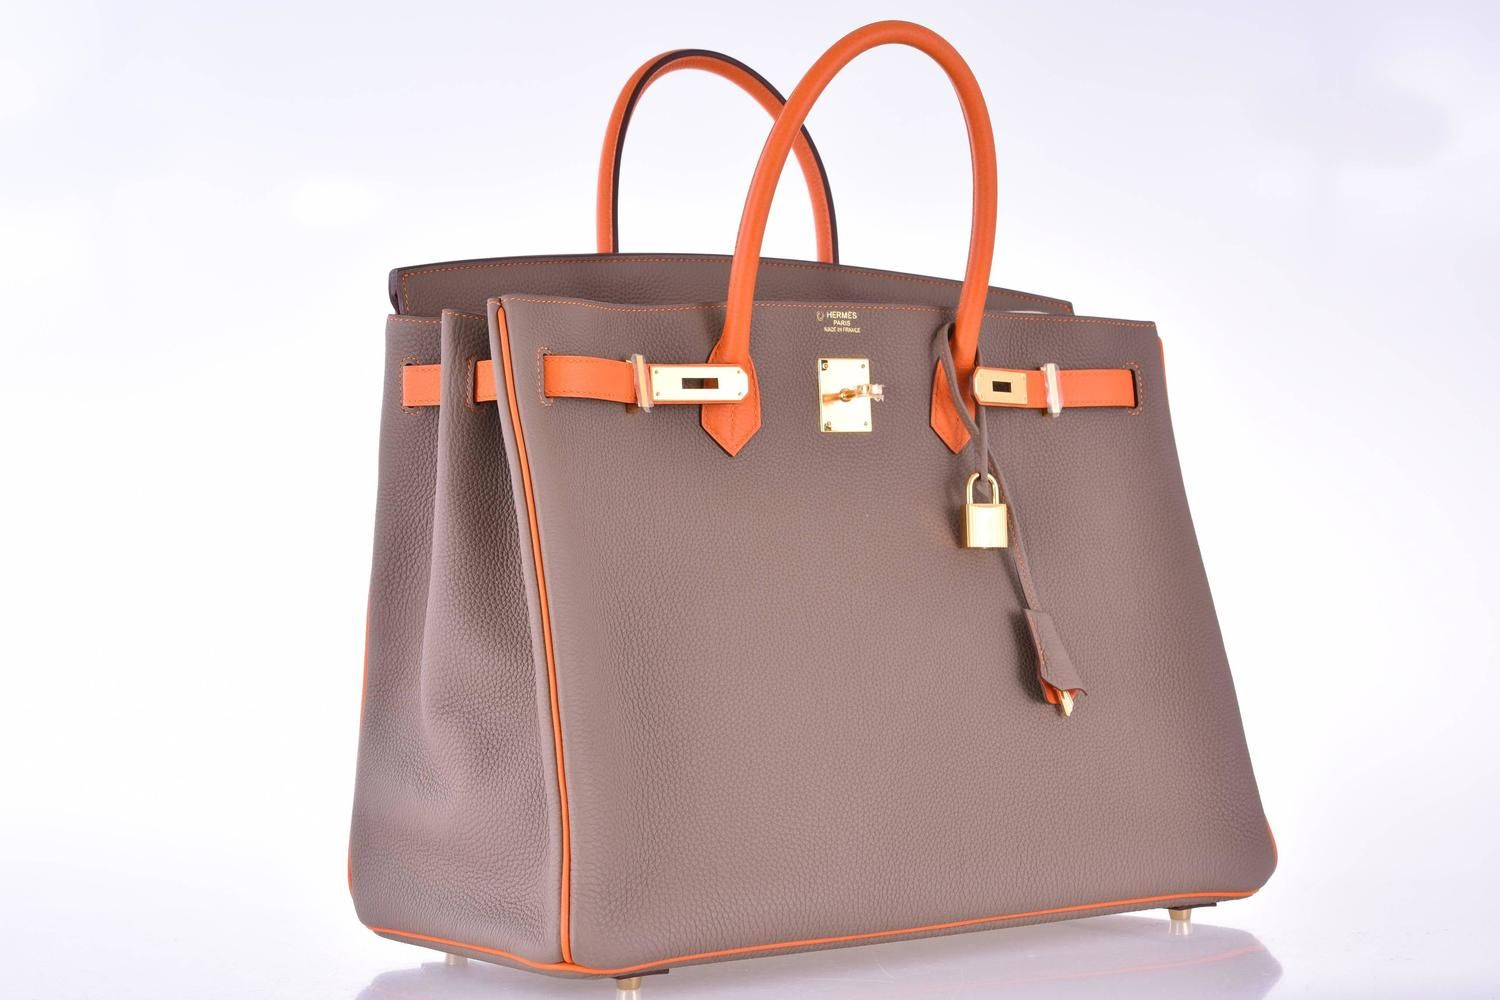 bb336e2fbaab Hermes Birkin Bag Etoupe 40cm Special Order with Orange Gold Hardware